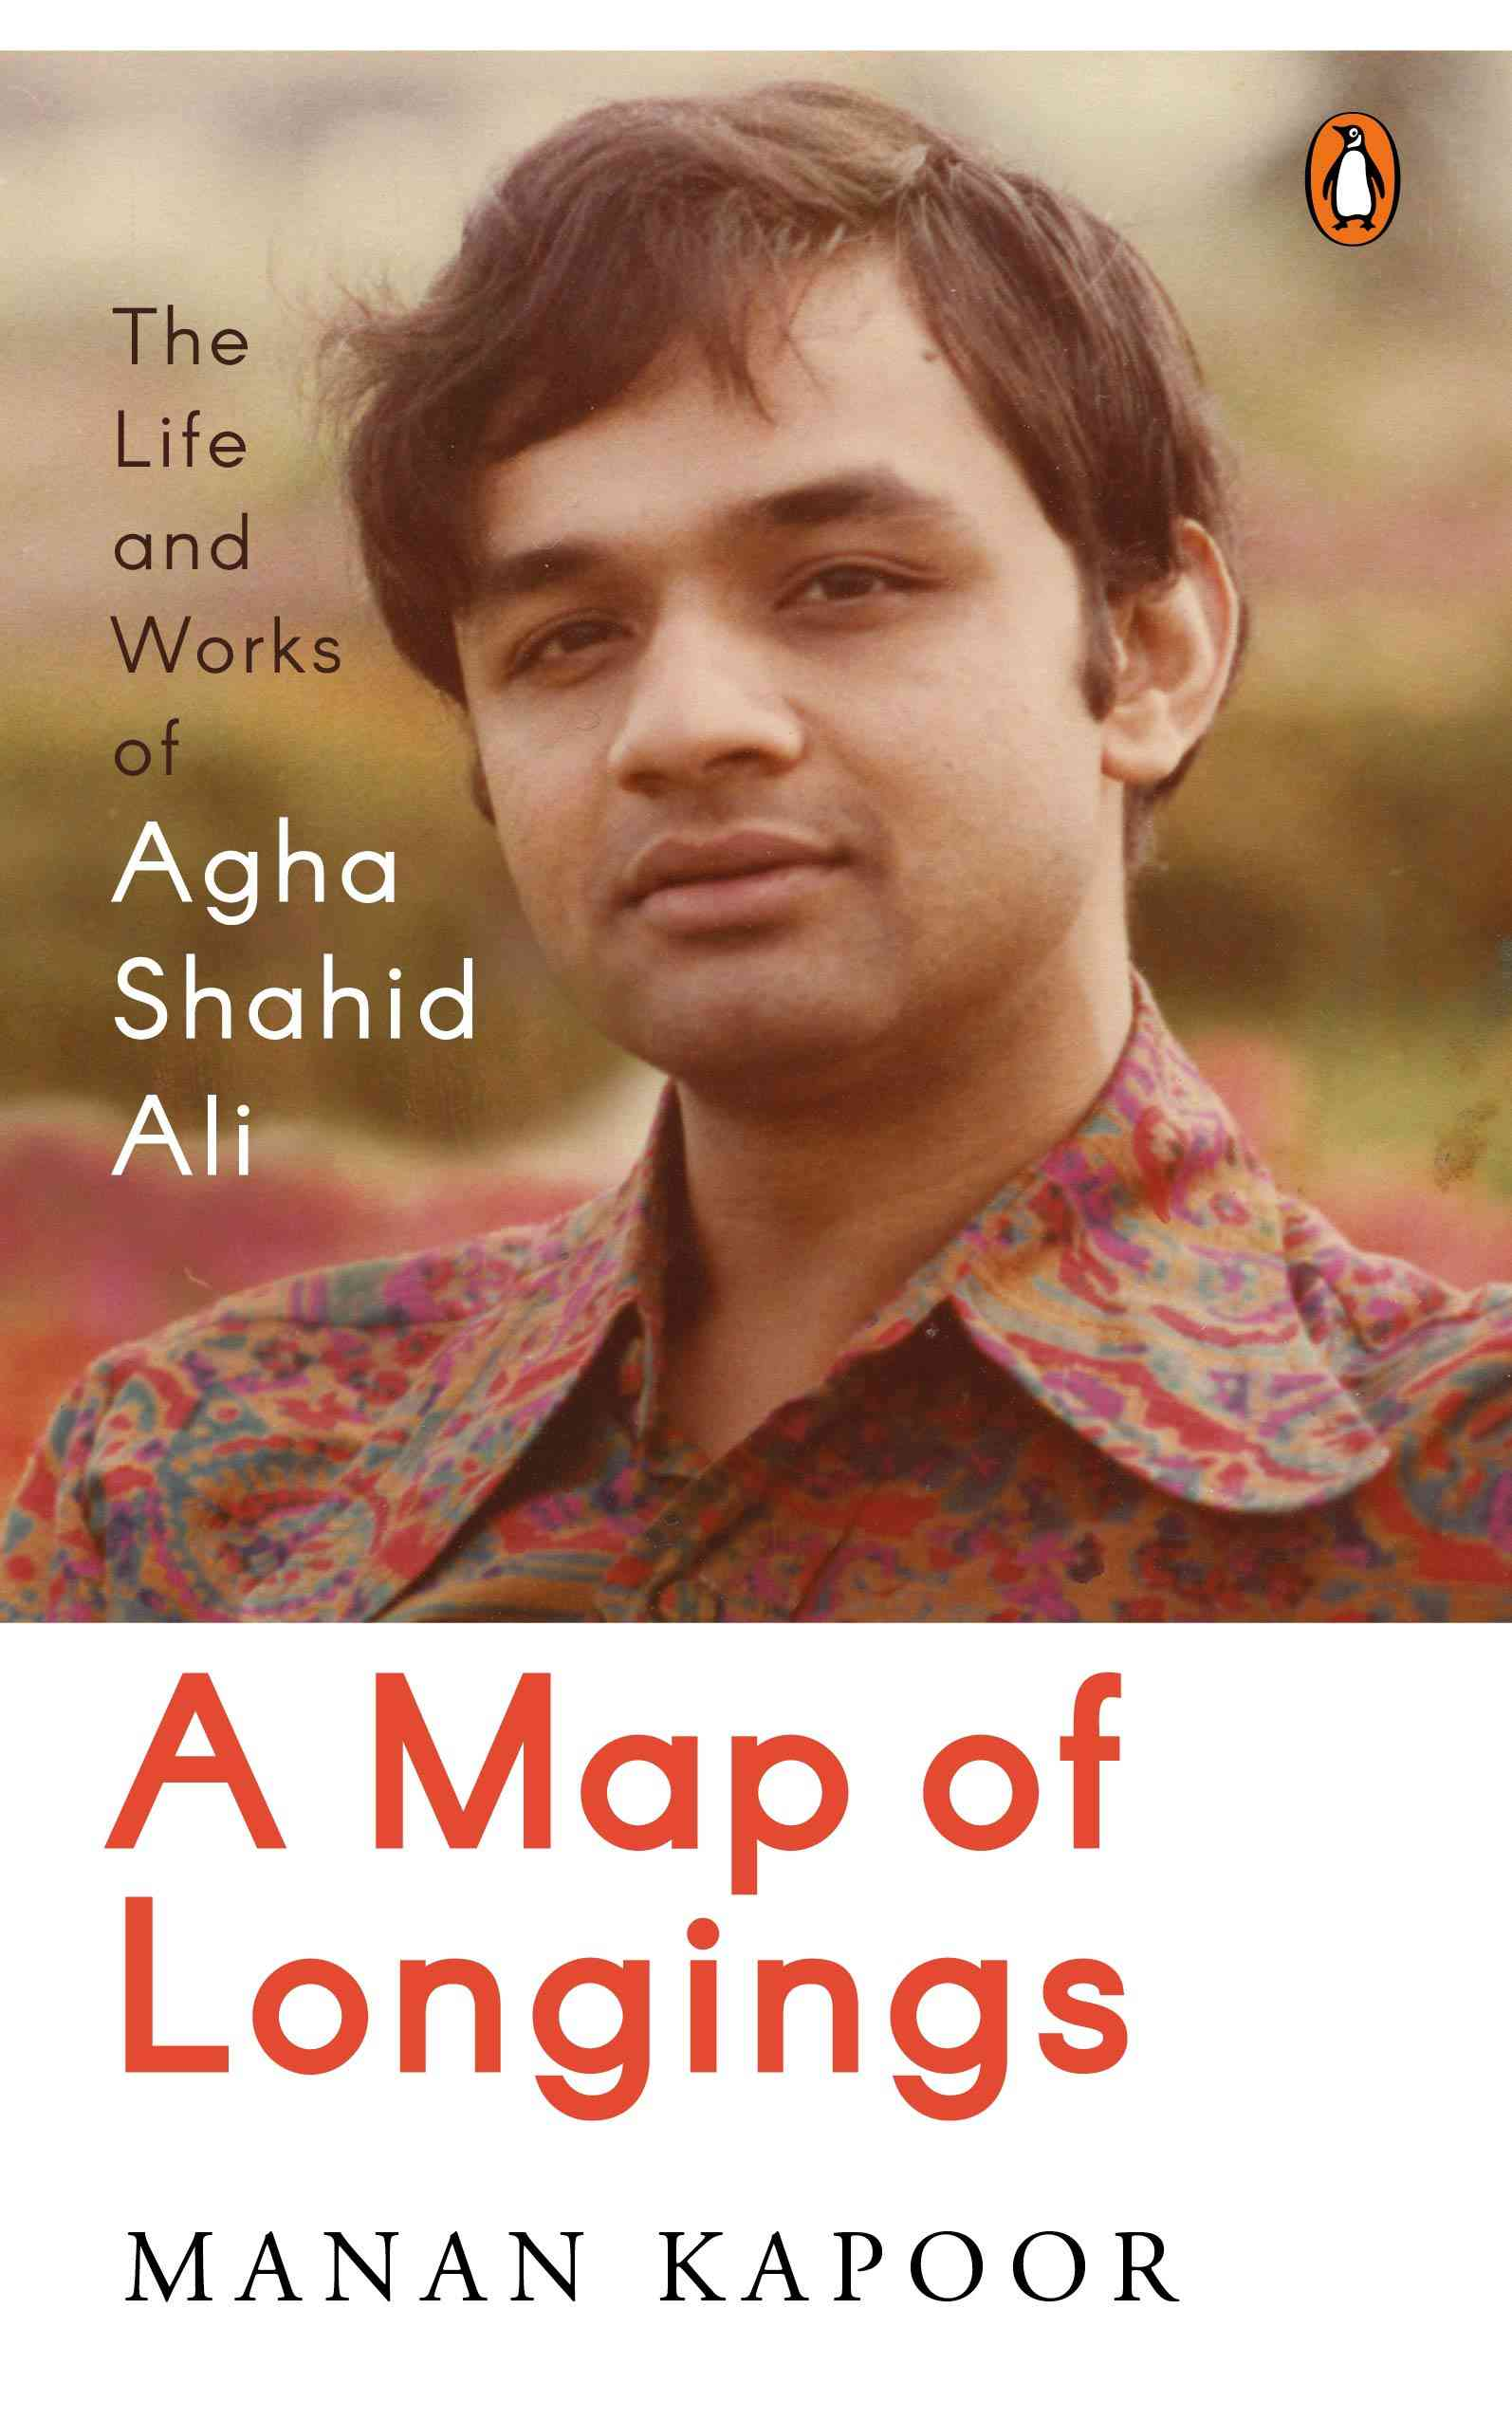 A Map of Longings: The Life and Works of Agha Shahid Ali